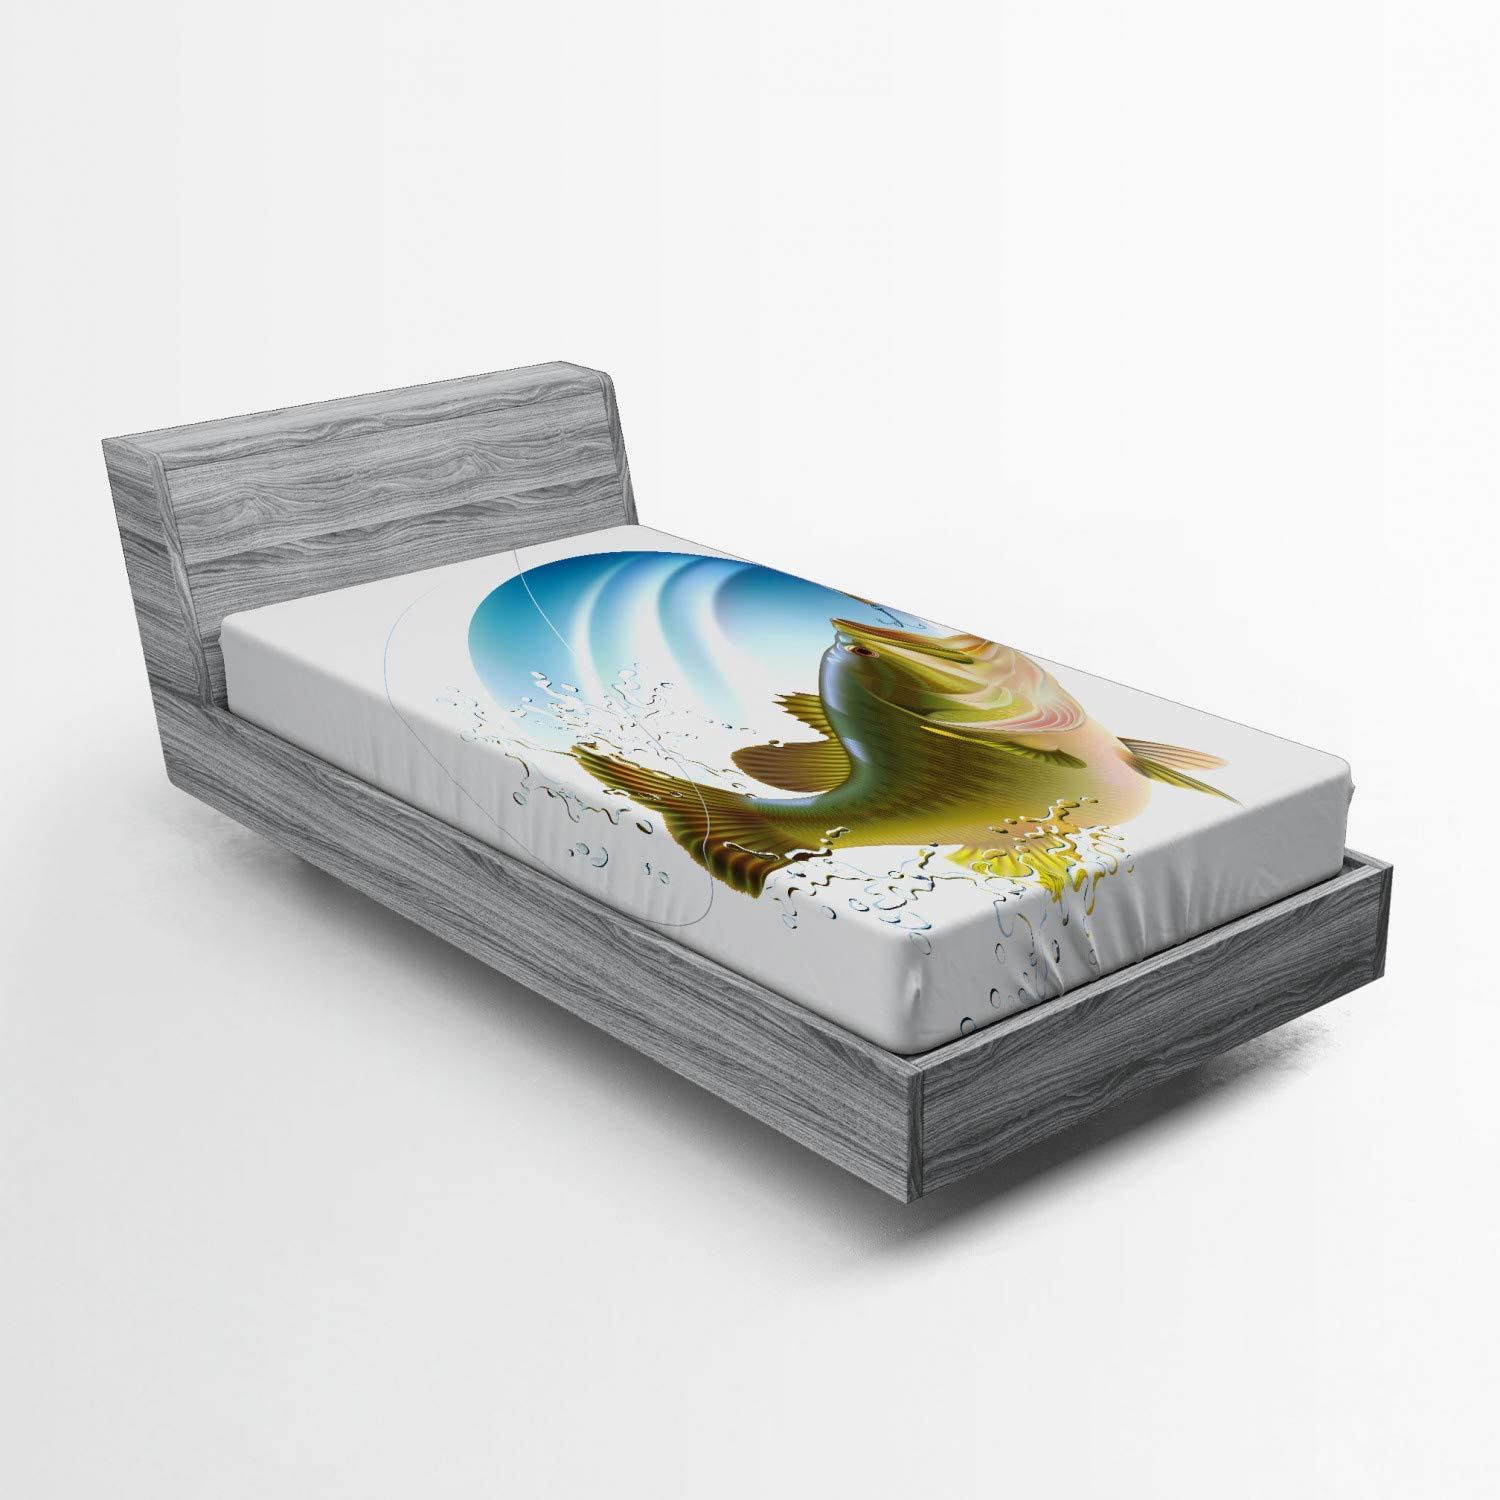 Ambesonne Fishing Fitted Sheet, Largemouth Sea Bass Catching a Bite in Water Spray Motion Splashing Wild Image, Soft Decorative Fabric Bedding All-Round Elastic Pocket, Twin Size, Green Blue